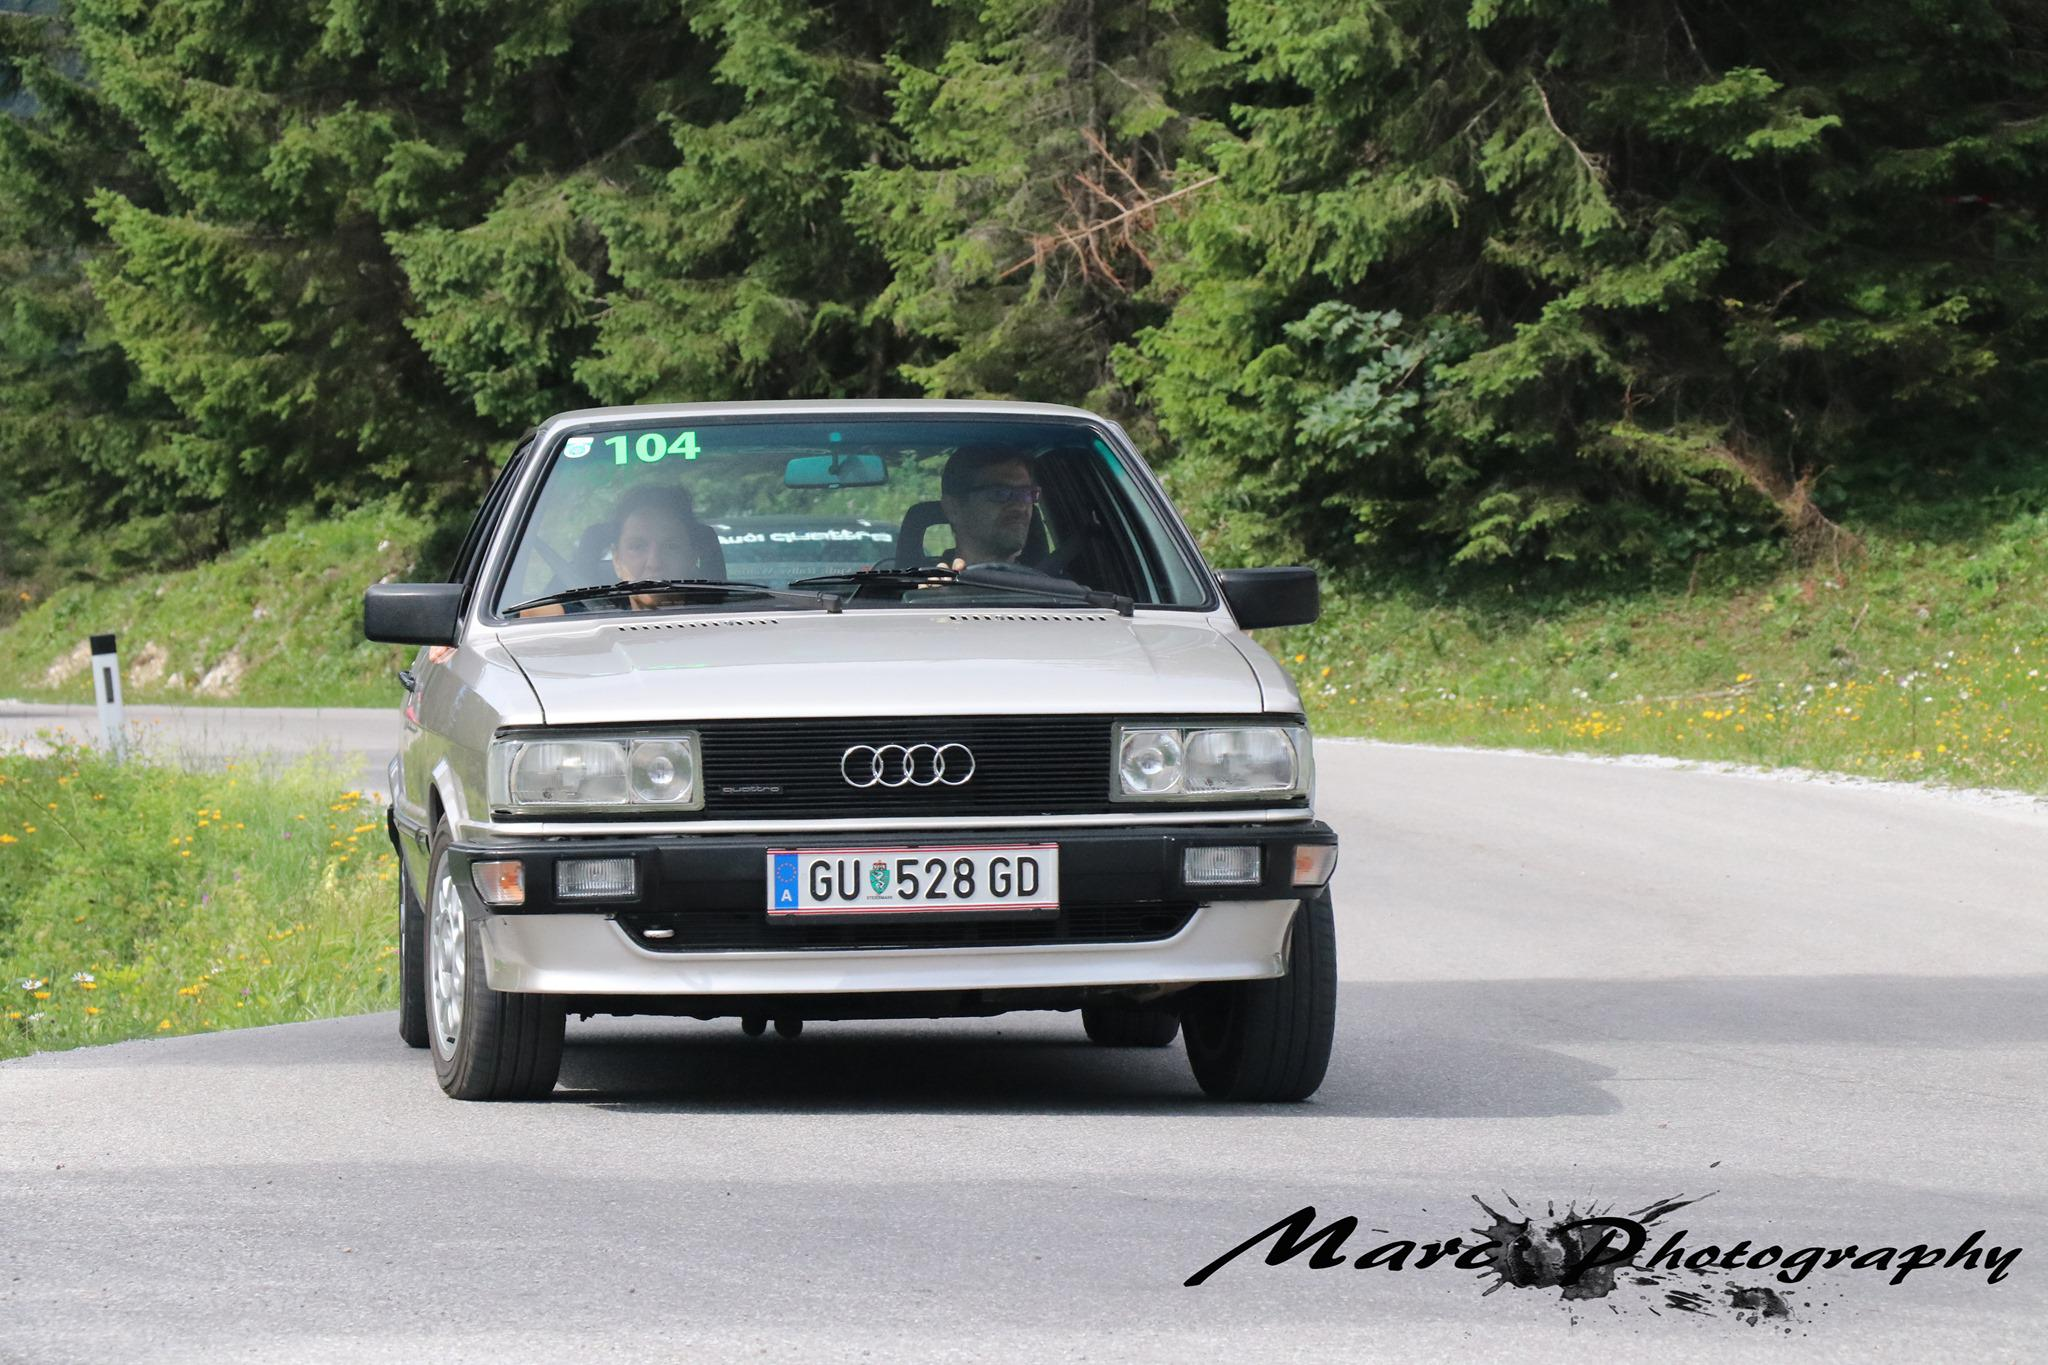 Fotos | quattrolegende 2019 - Teil 1